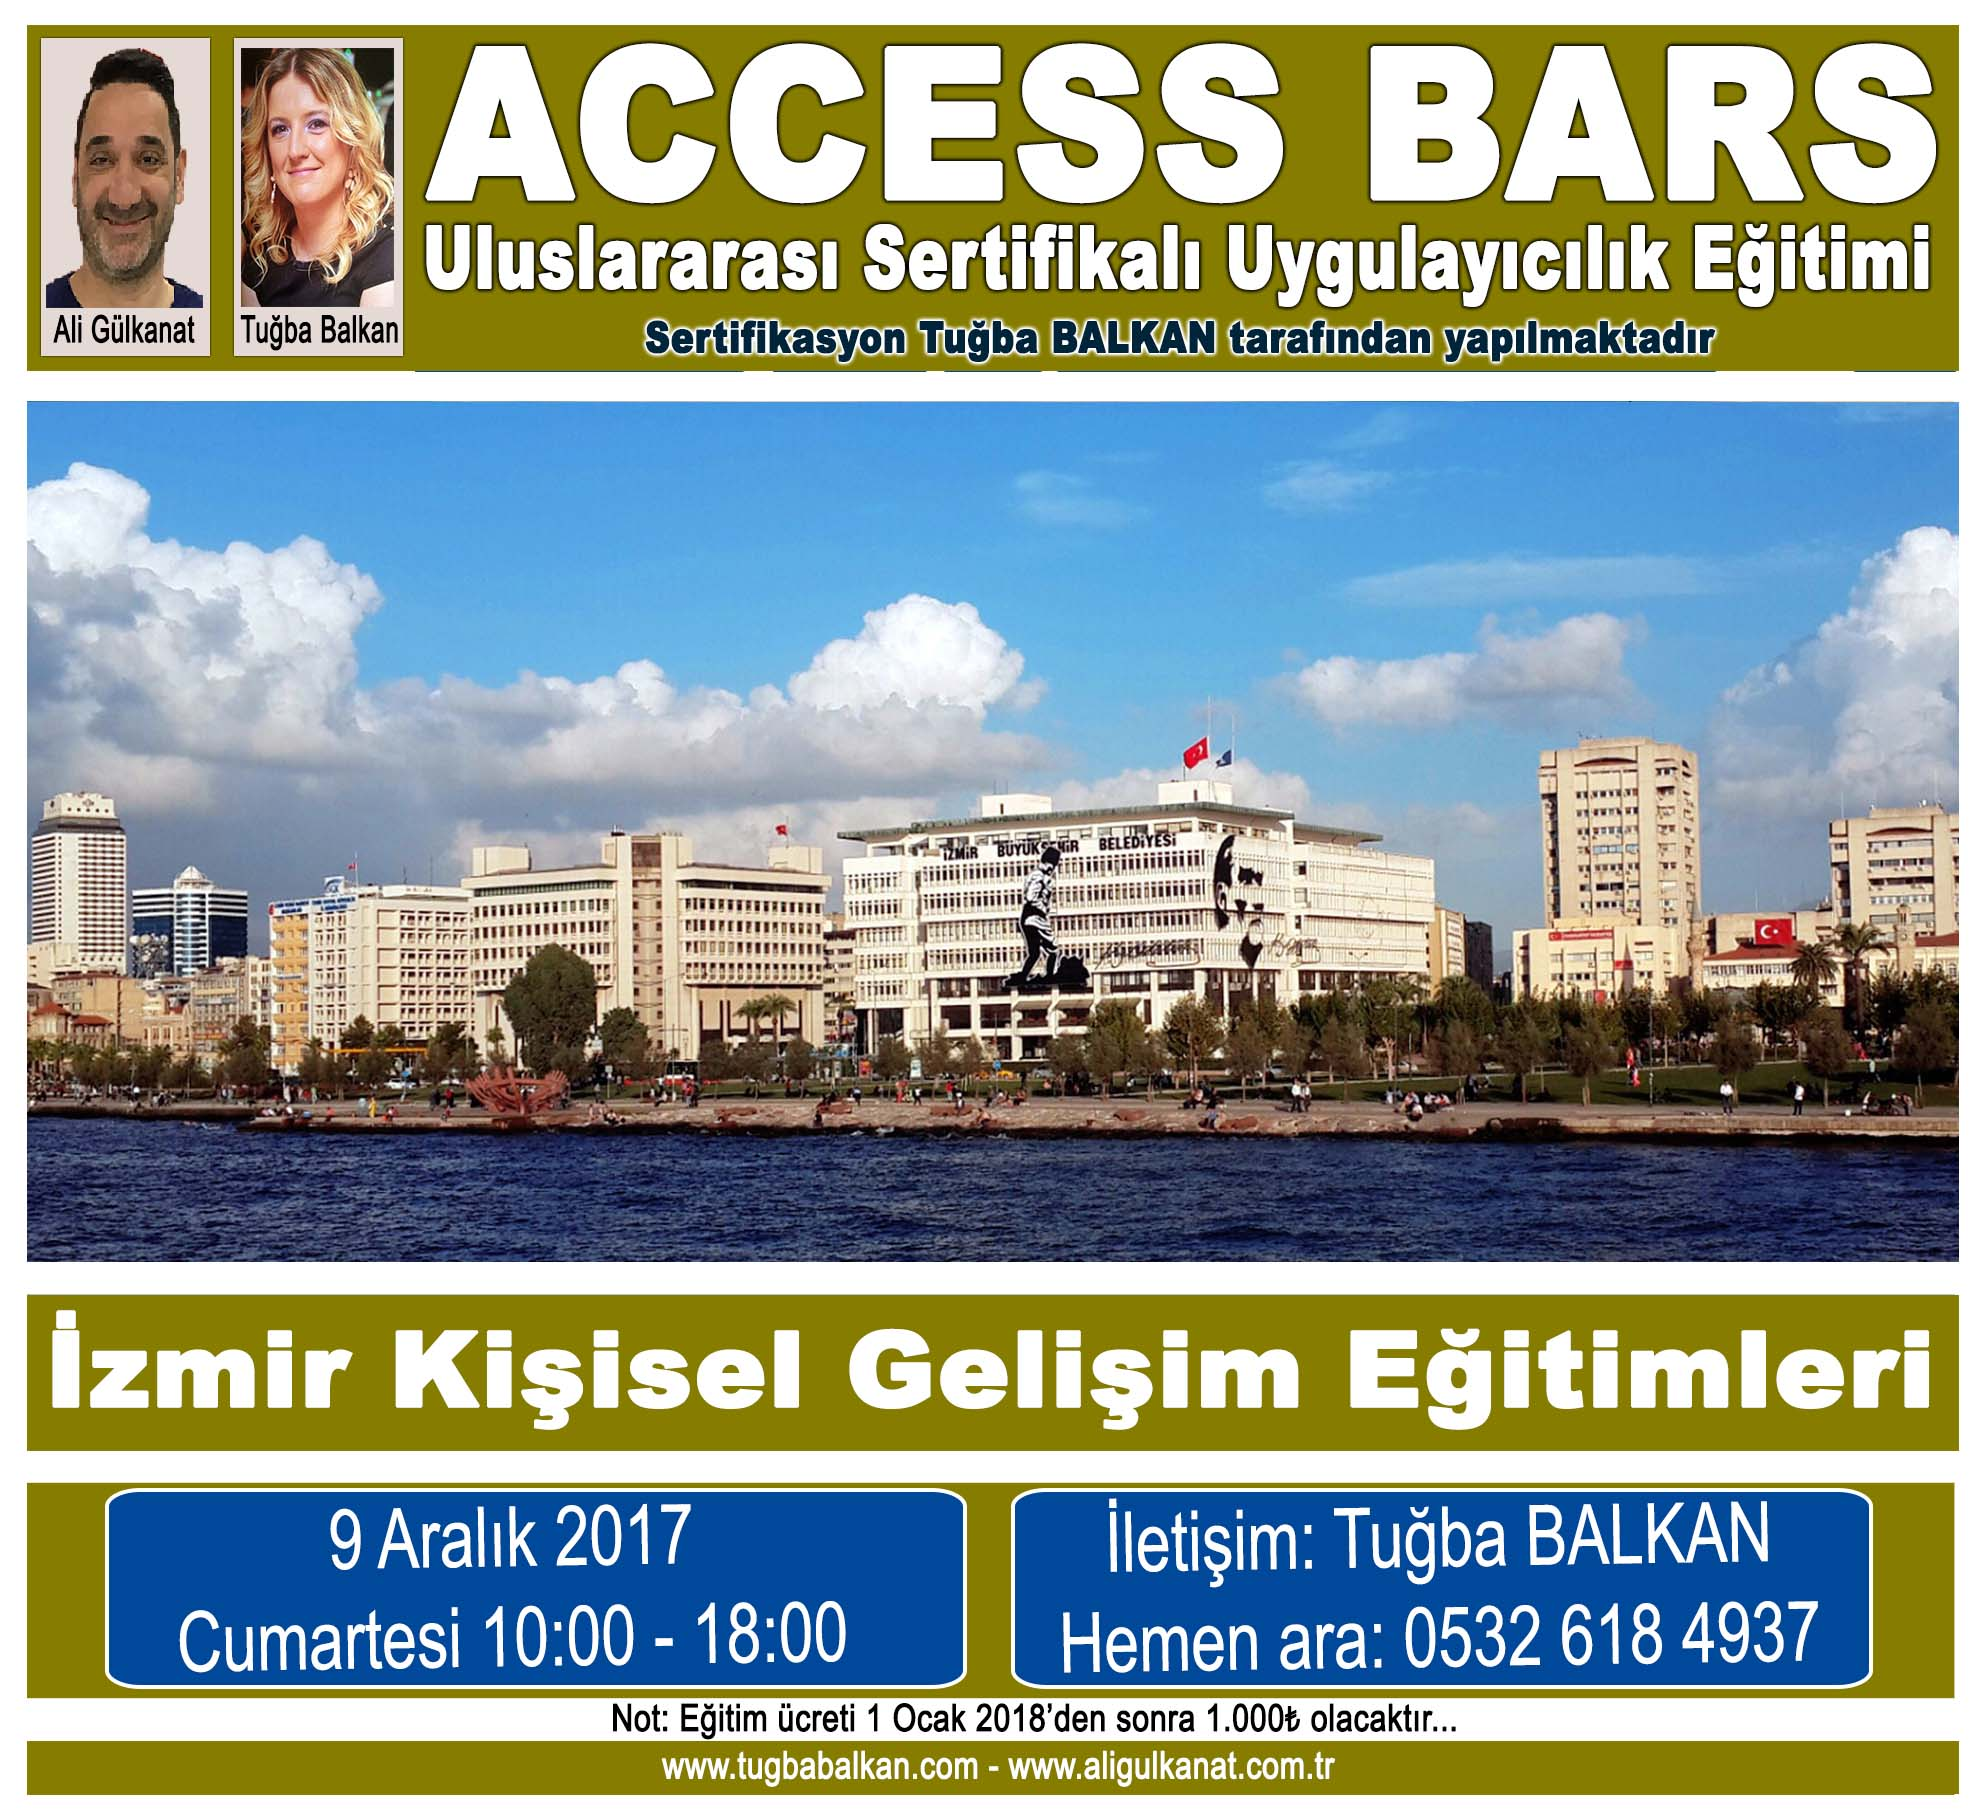 access-bars-tanitim-9-aralik-2